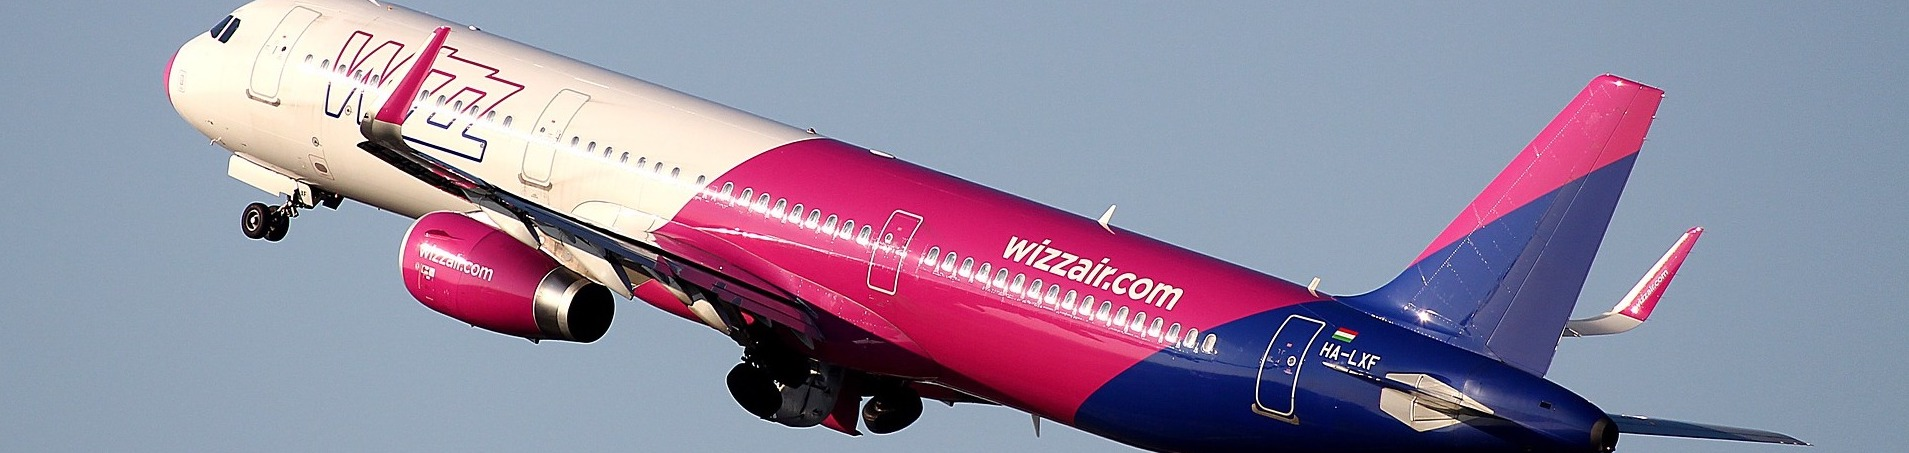 Find prices and the best time to book Wizz Air flights from Barajas to all destinations. The cheapest Wizz Air deals at AirHint.